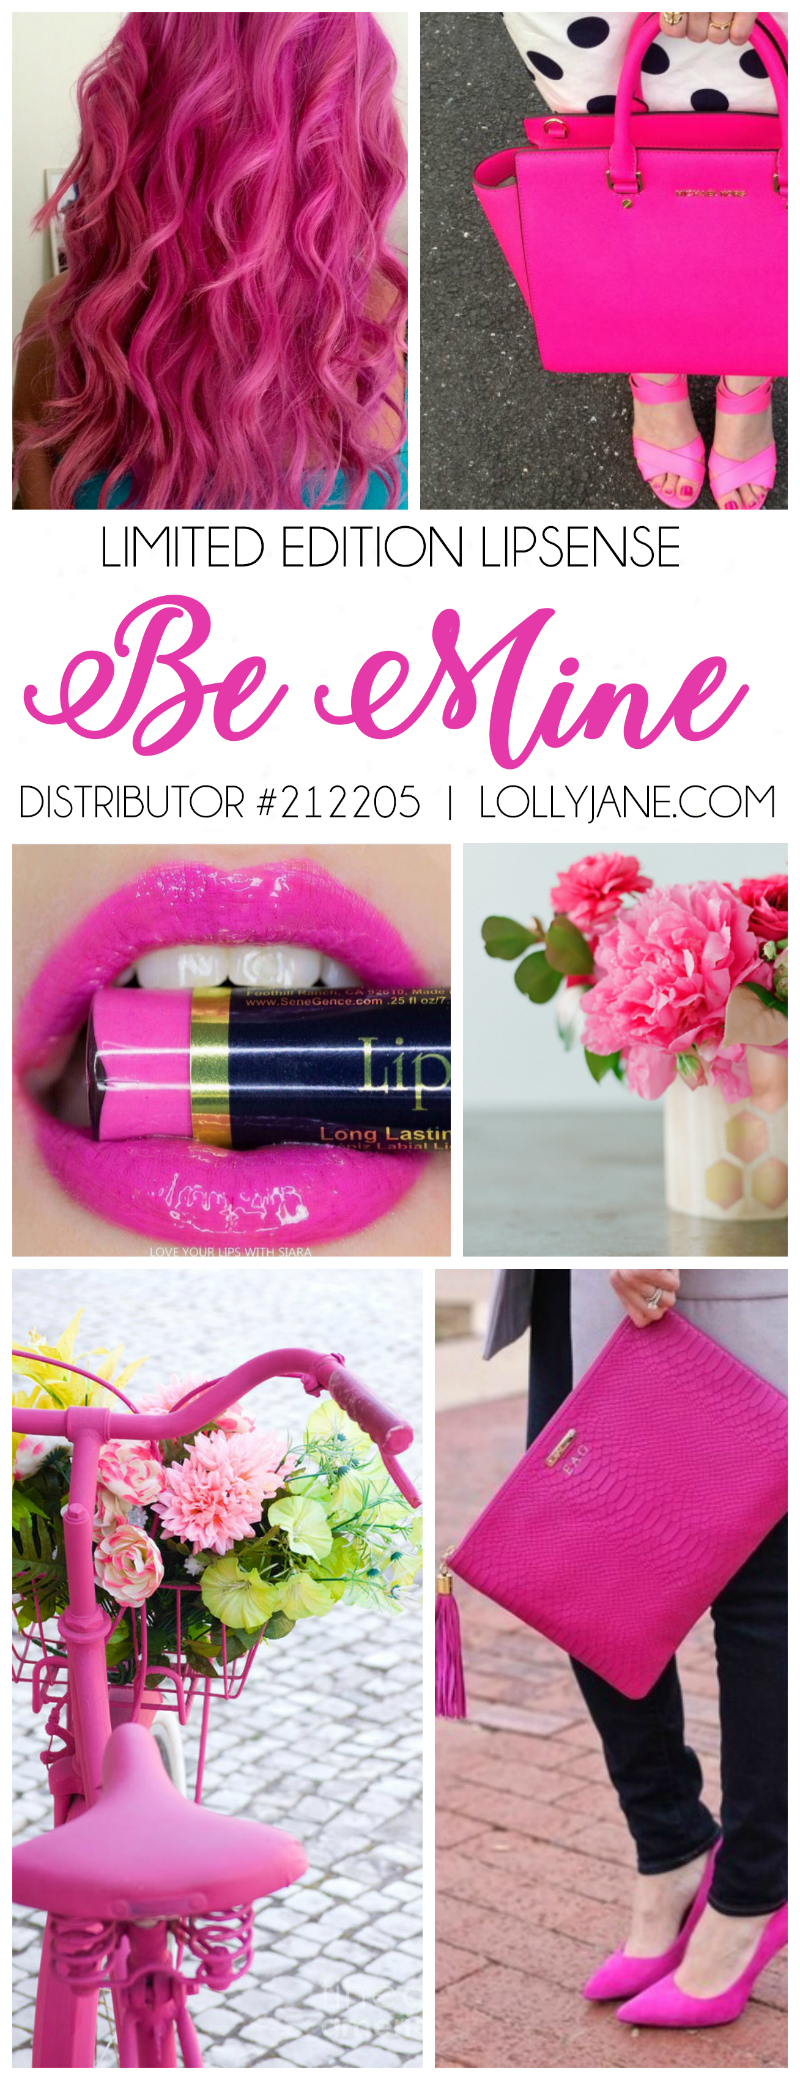 Limited Edition Be Mine LipSense!! This is a fun lipcolor! Love this hot pink waterproof lipcolor that lasts 4-18 hours!